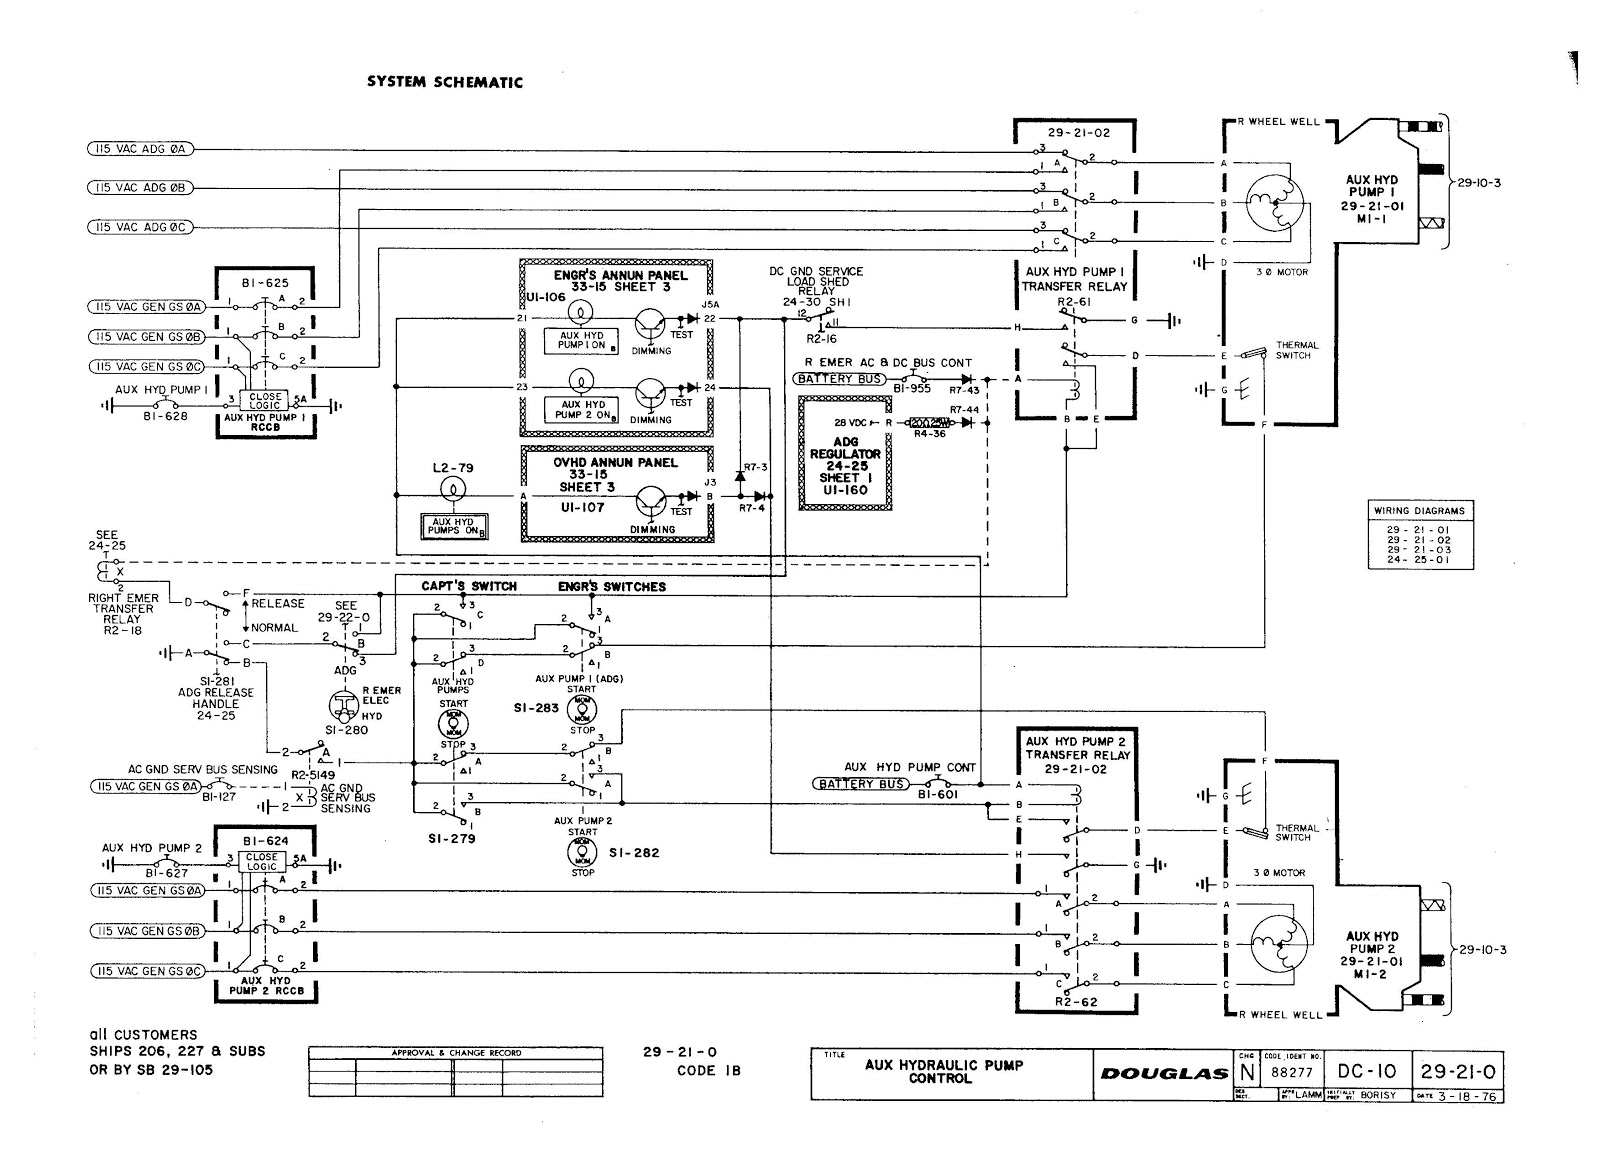 Wiring diagram or manual wiring diagrams schematics part 66 virtual school aircraft wiring and schematic diagrams rh part66school blogspot com at schematic diagram swarovskicordoba